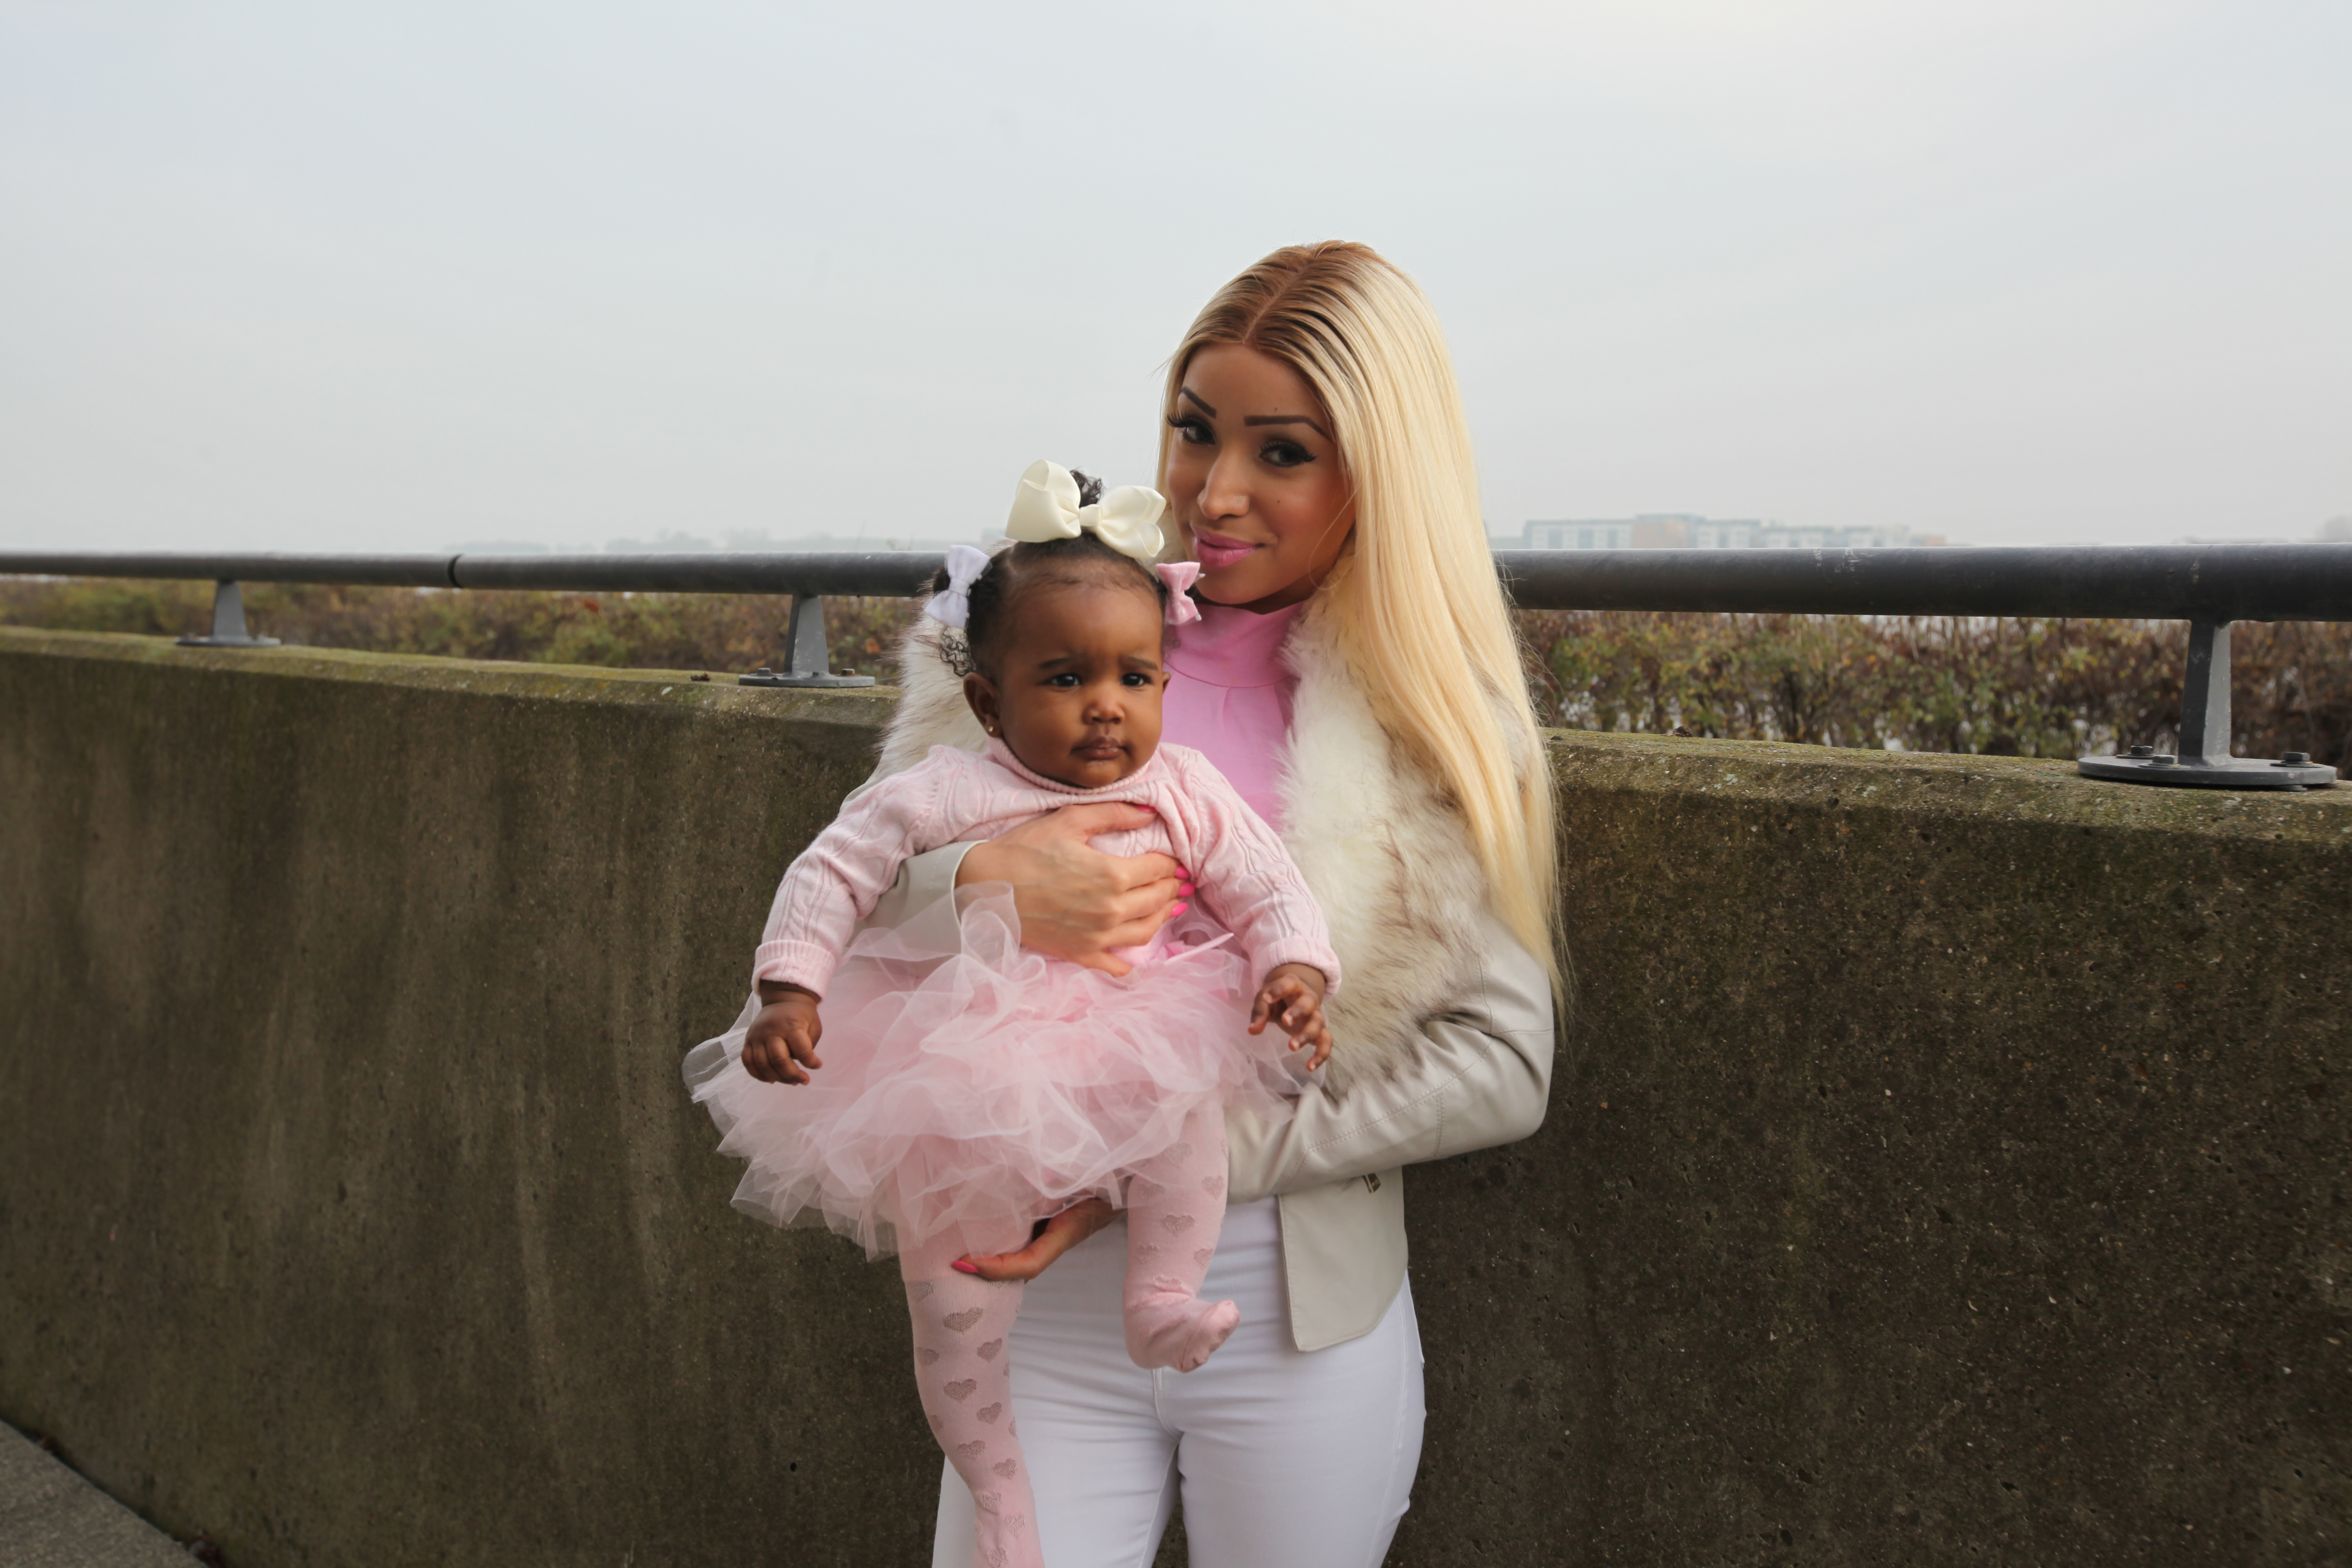 Delicia Kikulwe (29) and Dior (5 months)